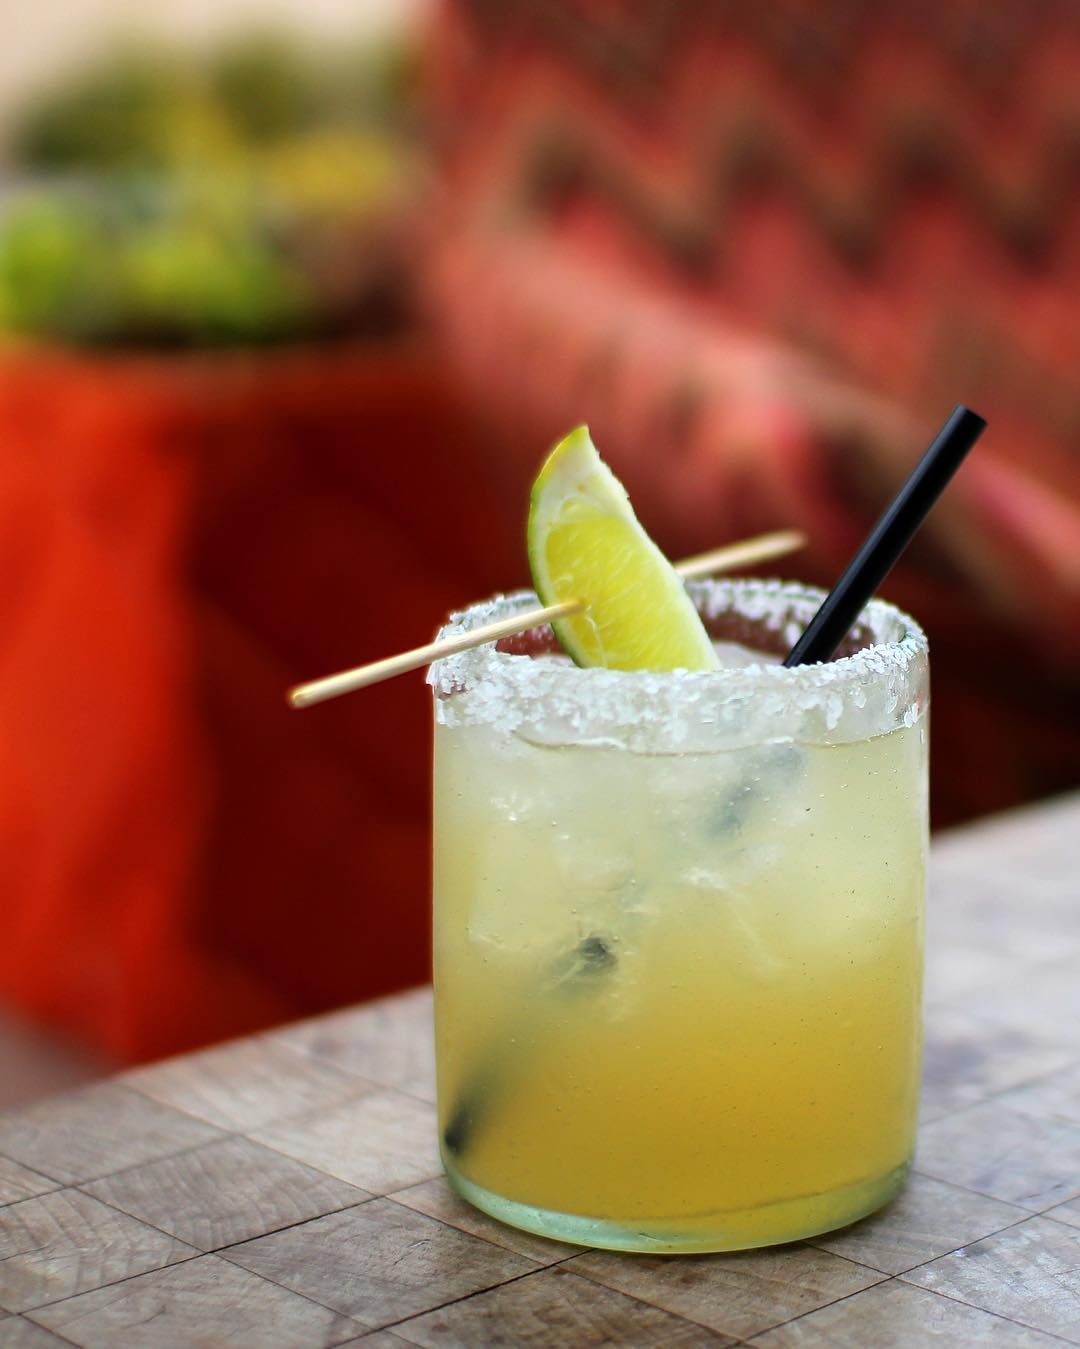 Happy Thirsty Thursday Enjoy A Puesto Perfect Margarita With Blue Agave Reposado Tequila Lime And Agave Perfect Margarita Thirsty Thursday Reposado Tequila